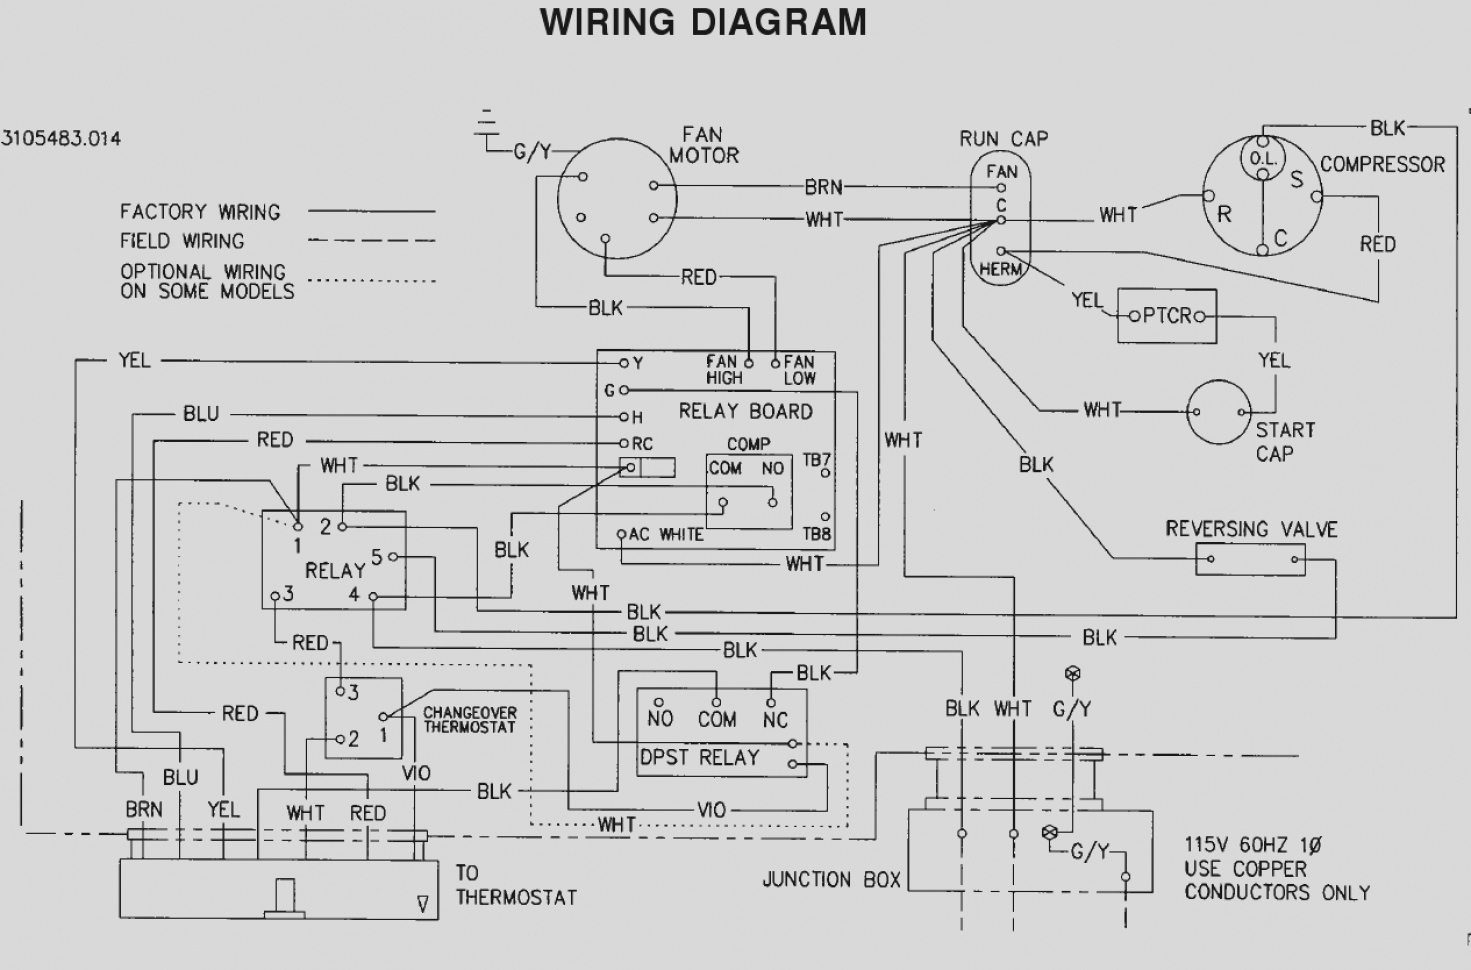 Dometic Air Conditioner Wiring Diagram - Wiring Diagrams Place